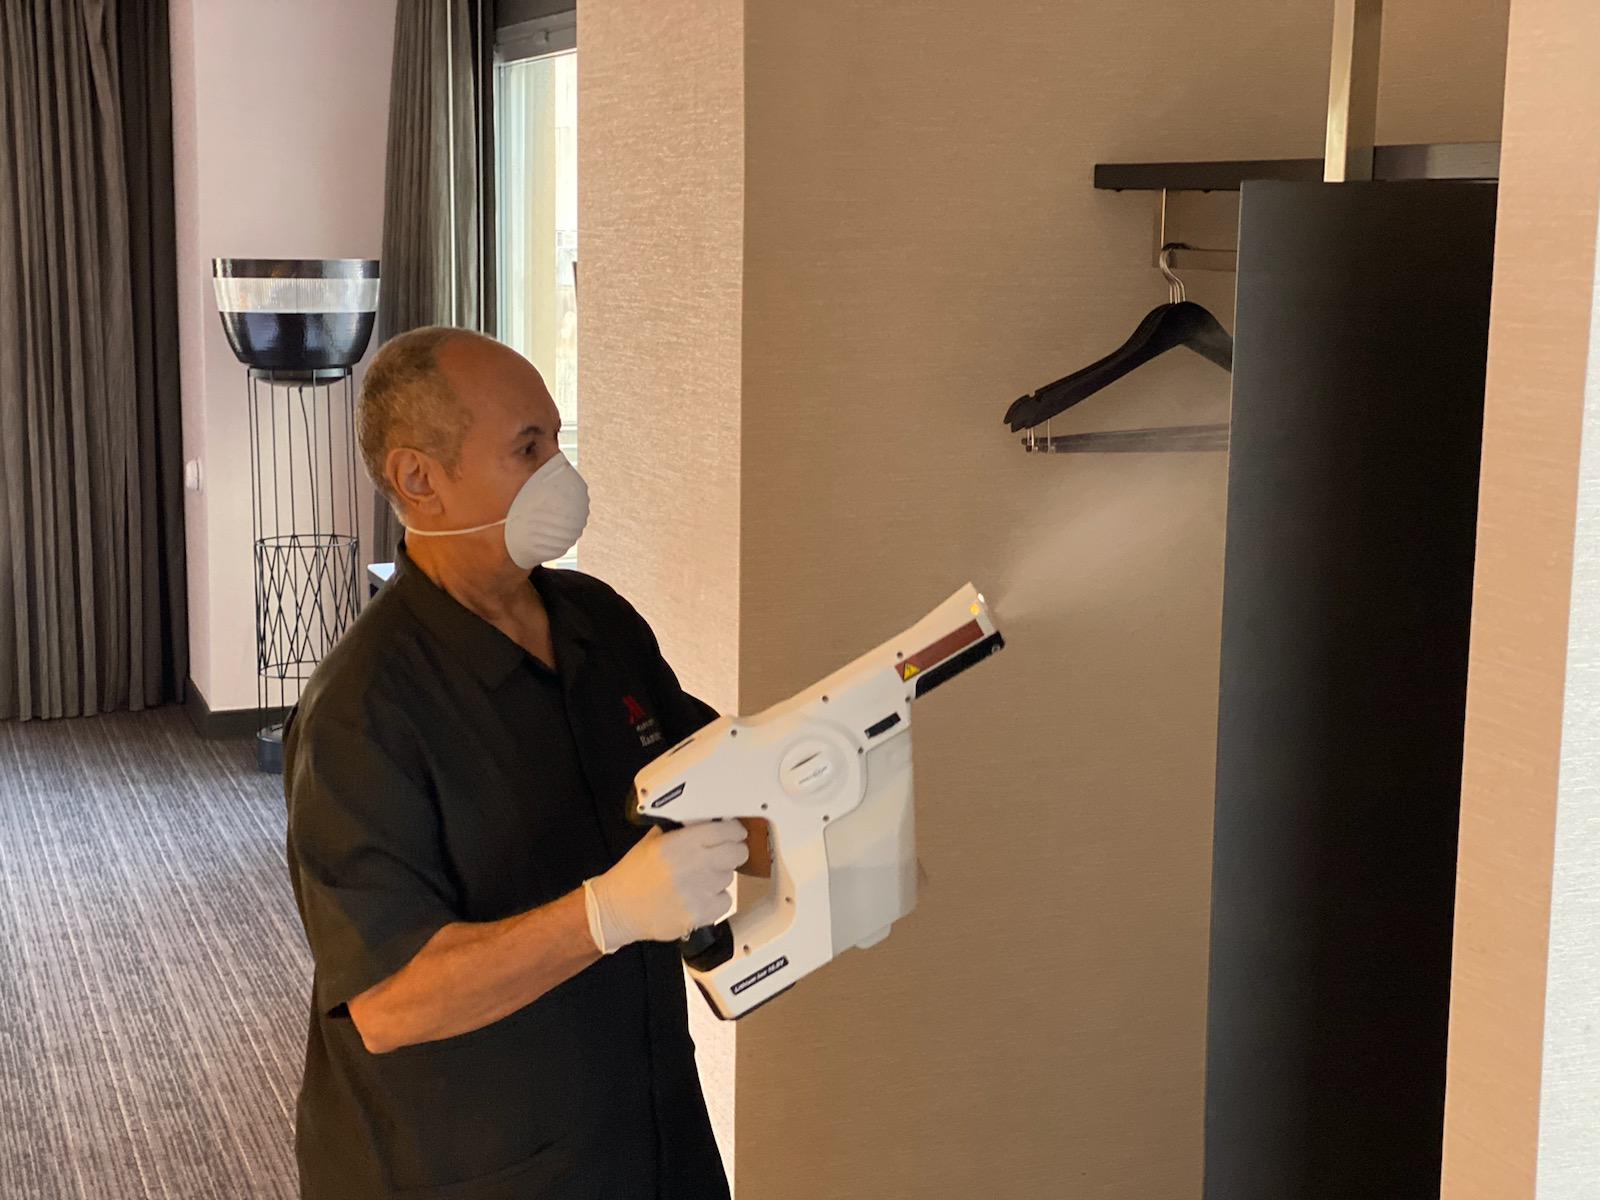 Marriott's Global Cleanliness Council